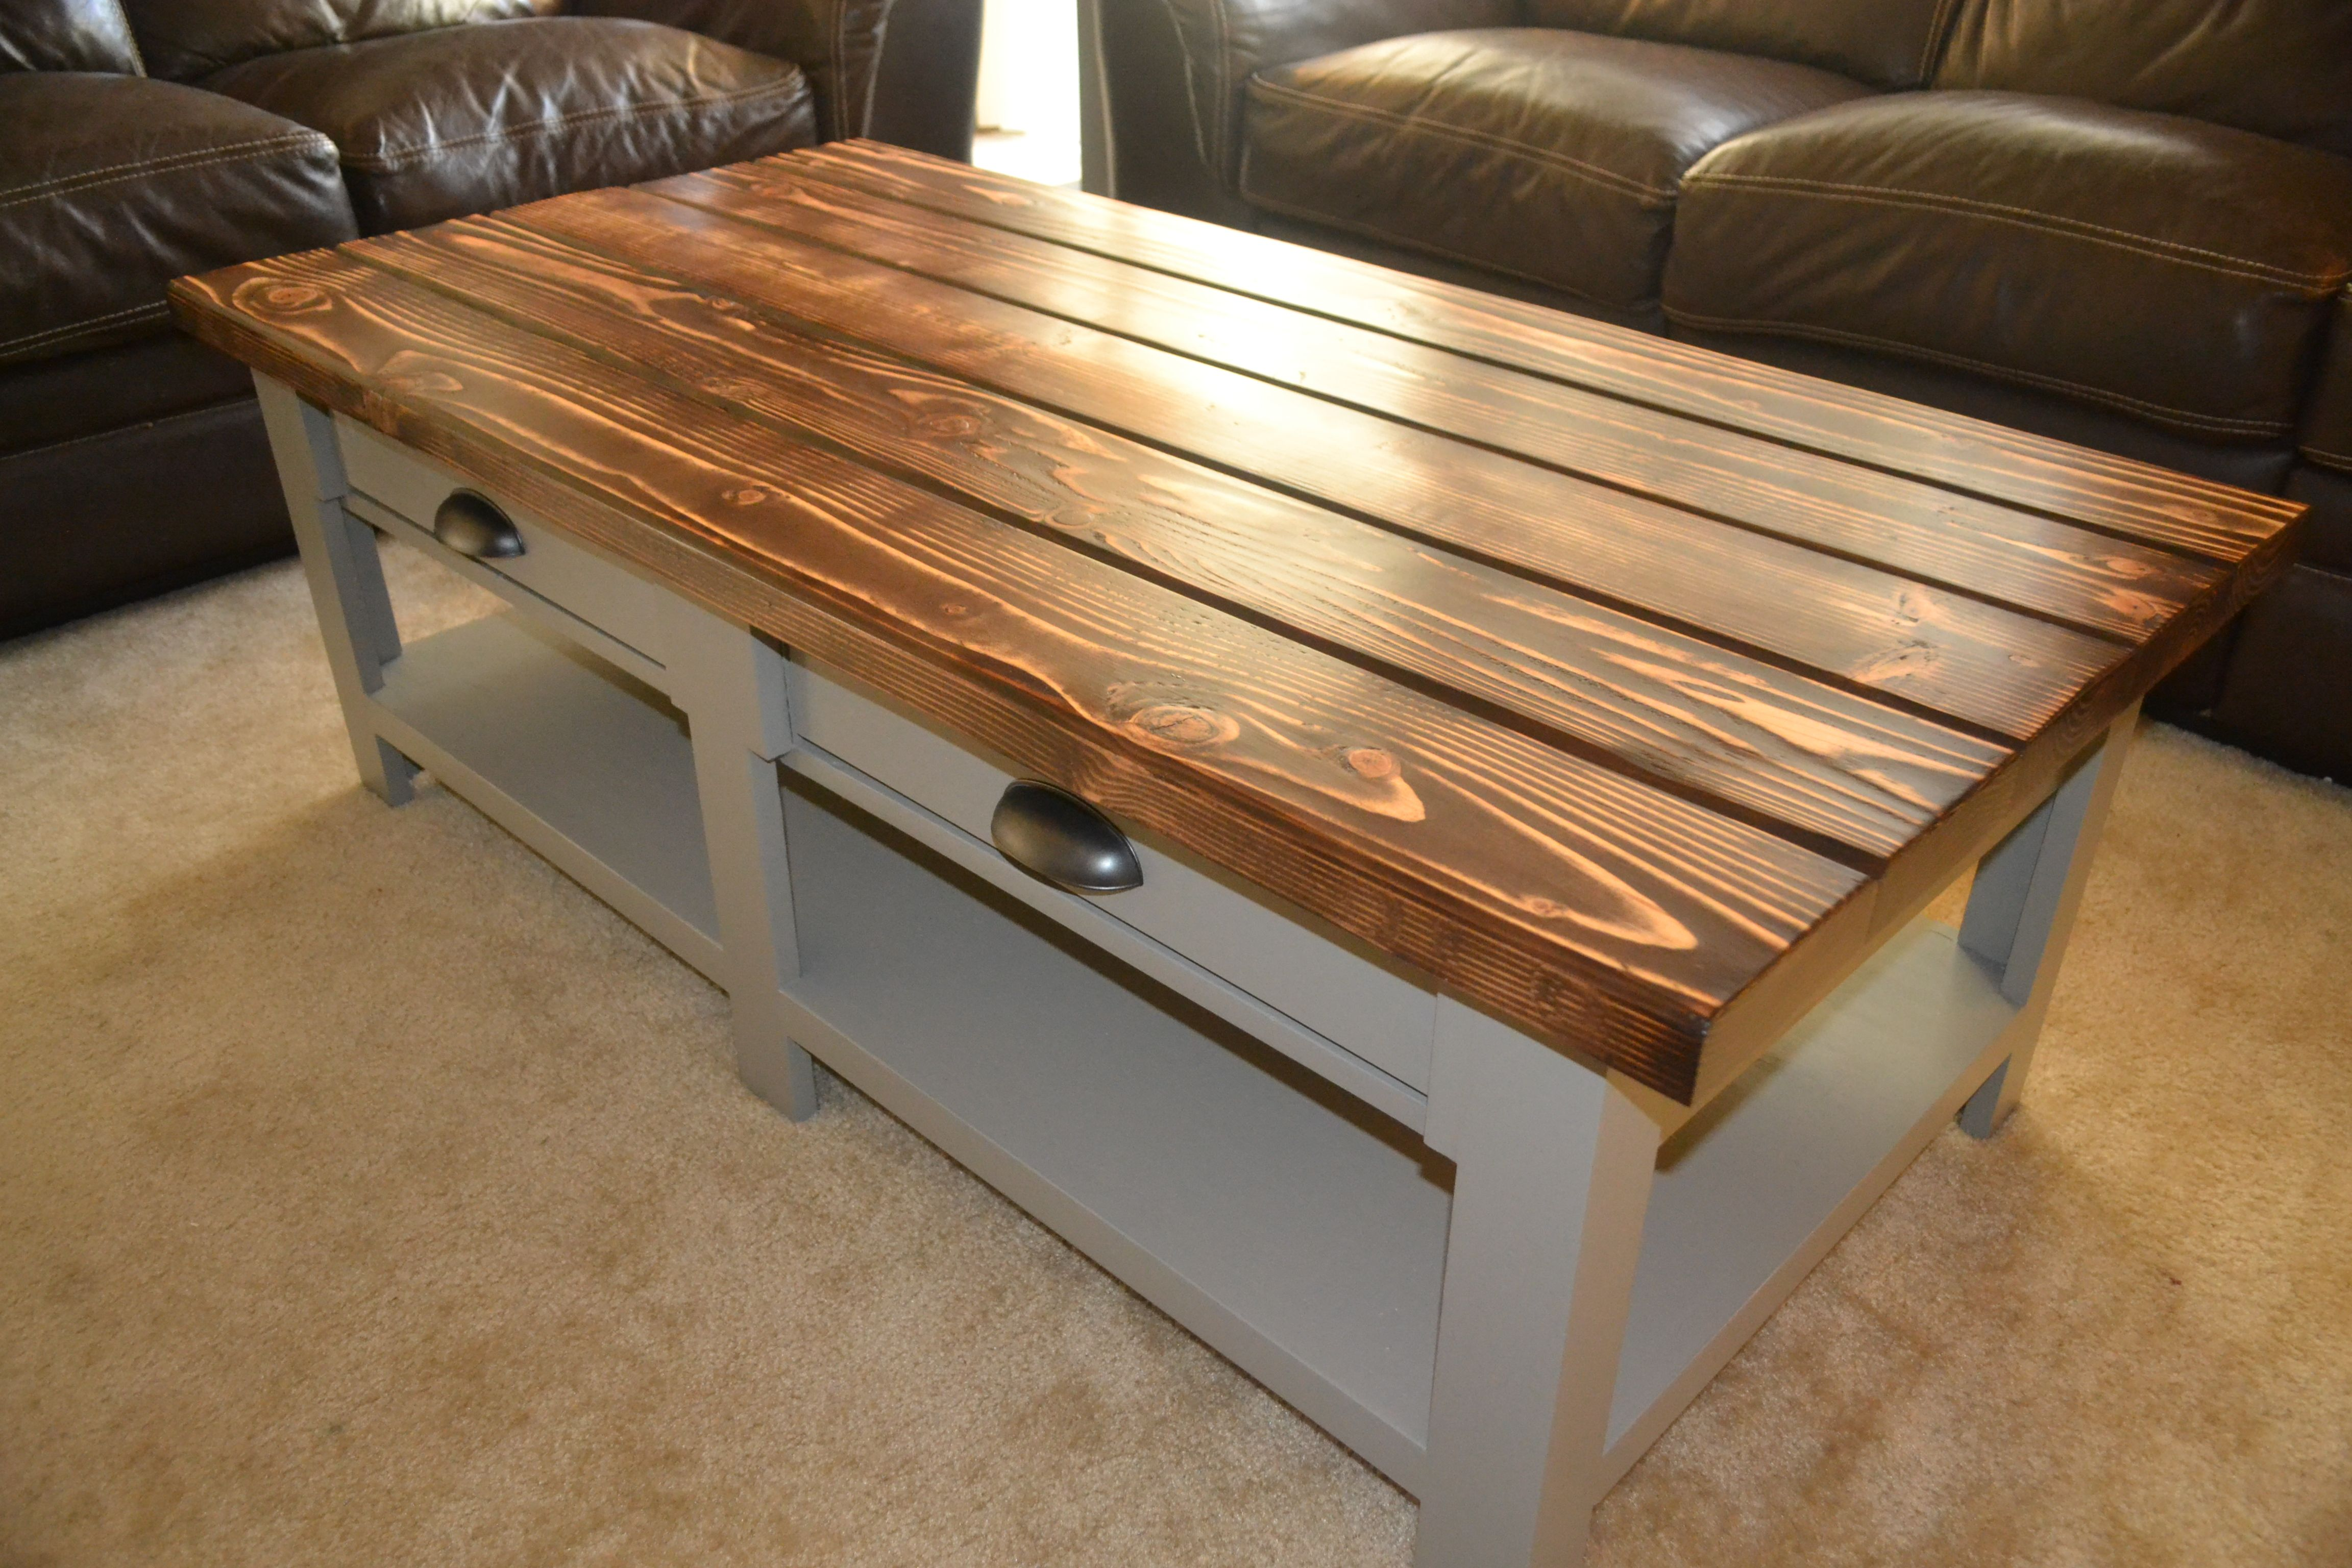 Diy Benchwright Coffee Table With Drawers Coffee Table Plans Coffee Table Inspiration Diy Coffee Table [ 3072 x 4608 Pixel ]